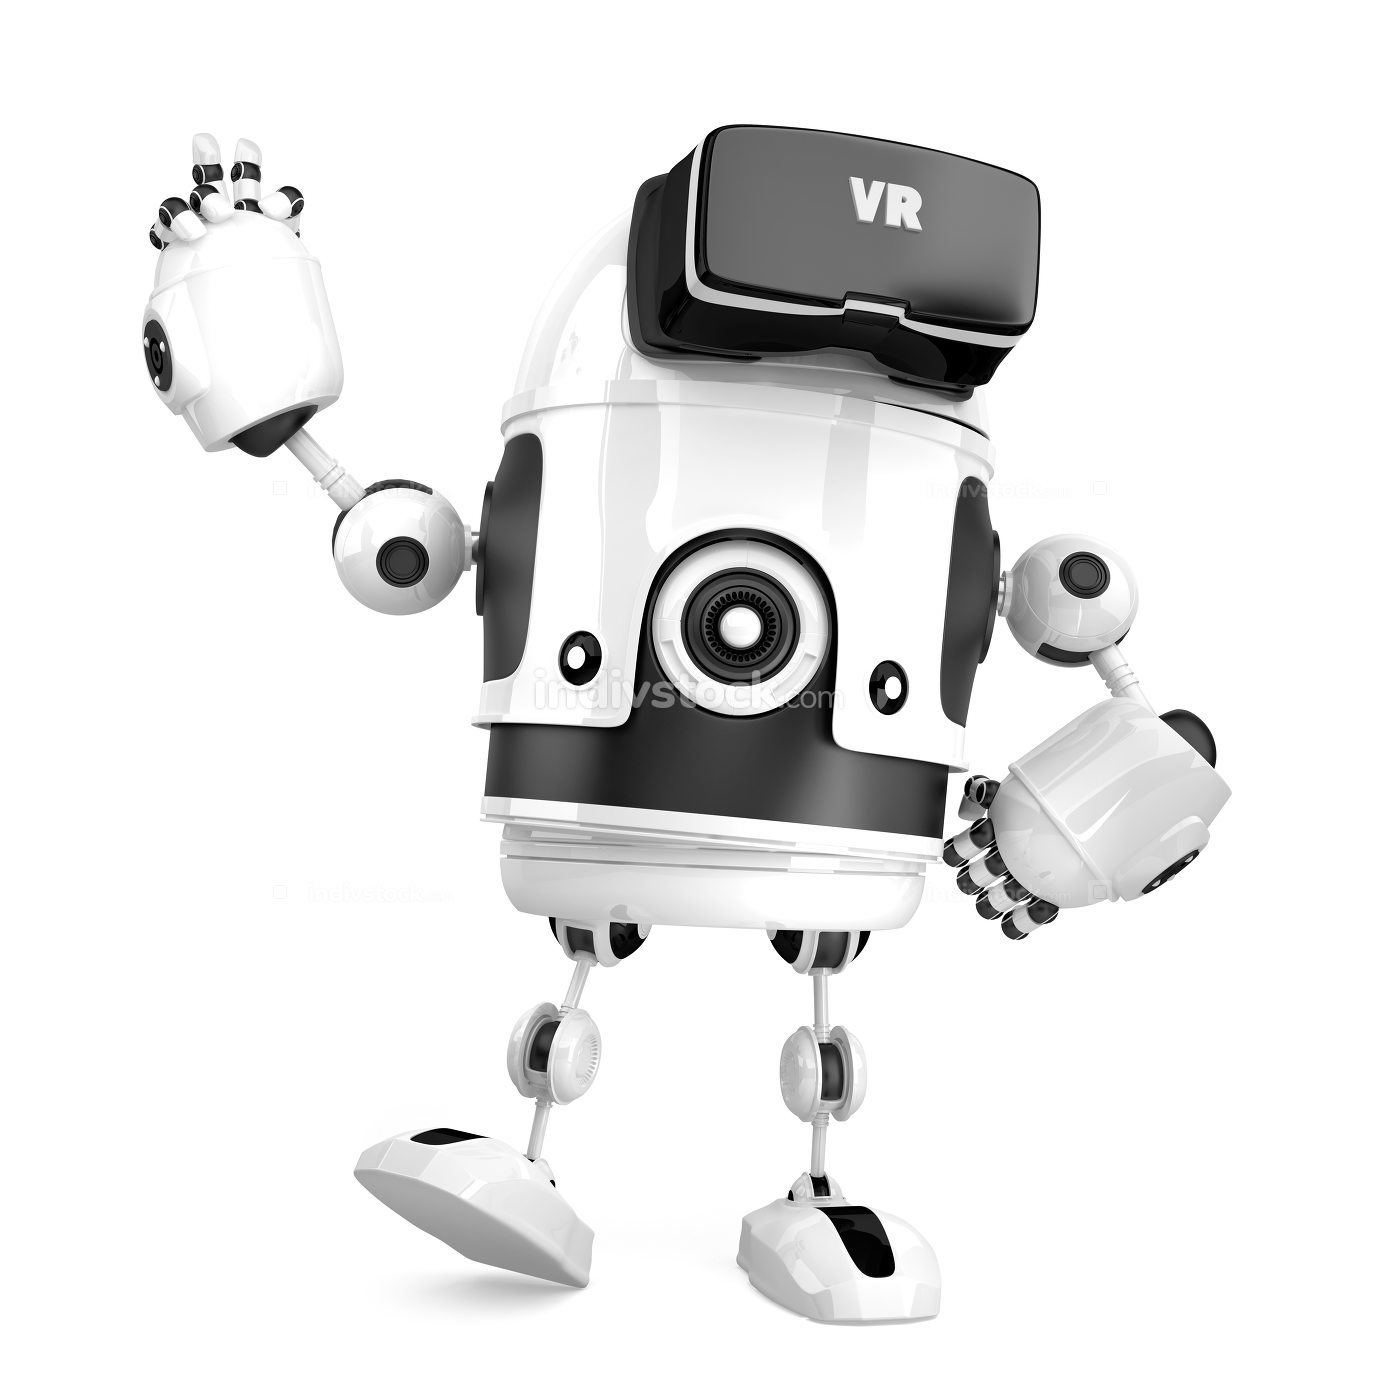 3D robot with VR glasses. 3D illustration. Isolated. Contains cl